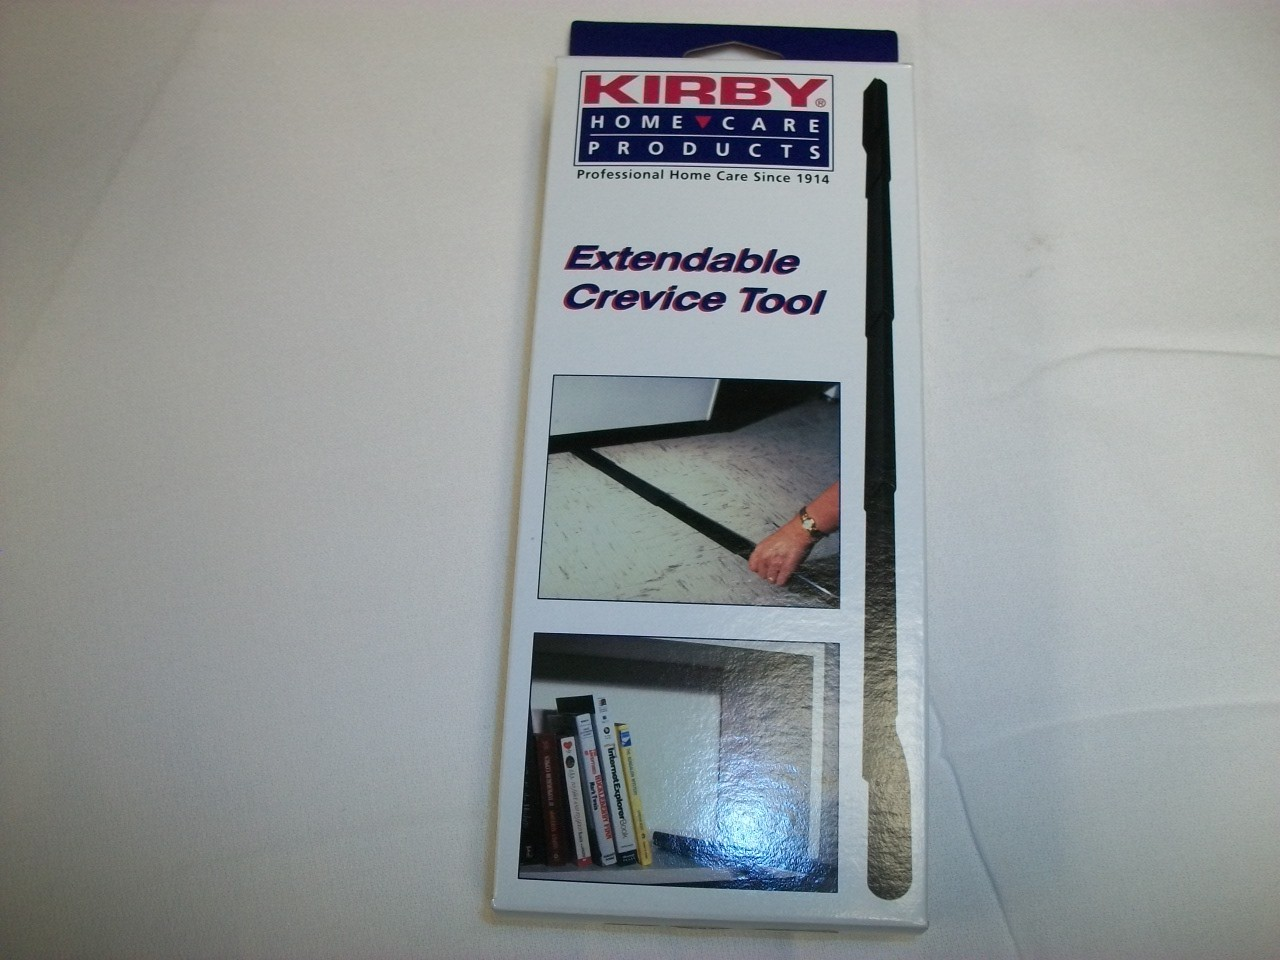 Kirby Crevice Tool Extendable